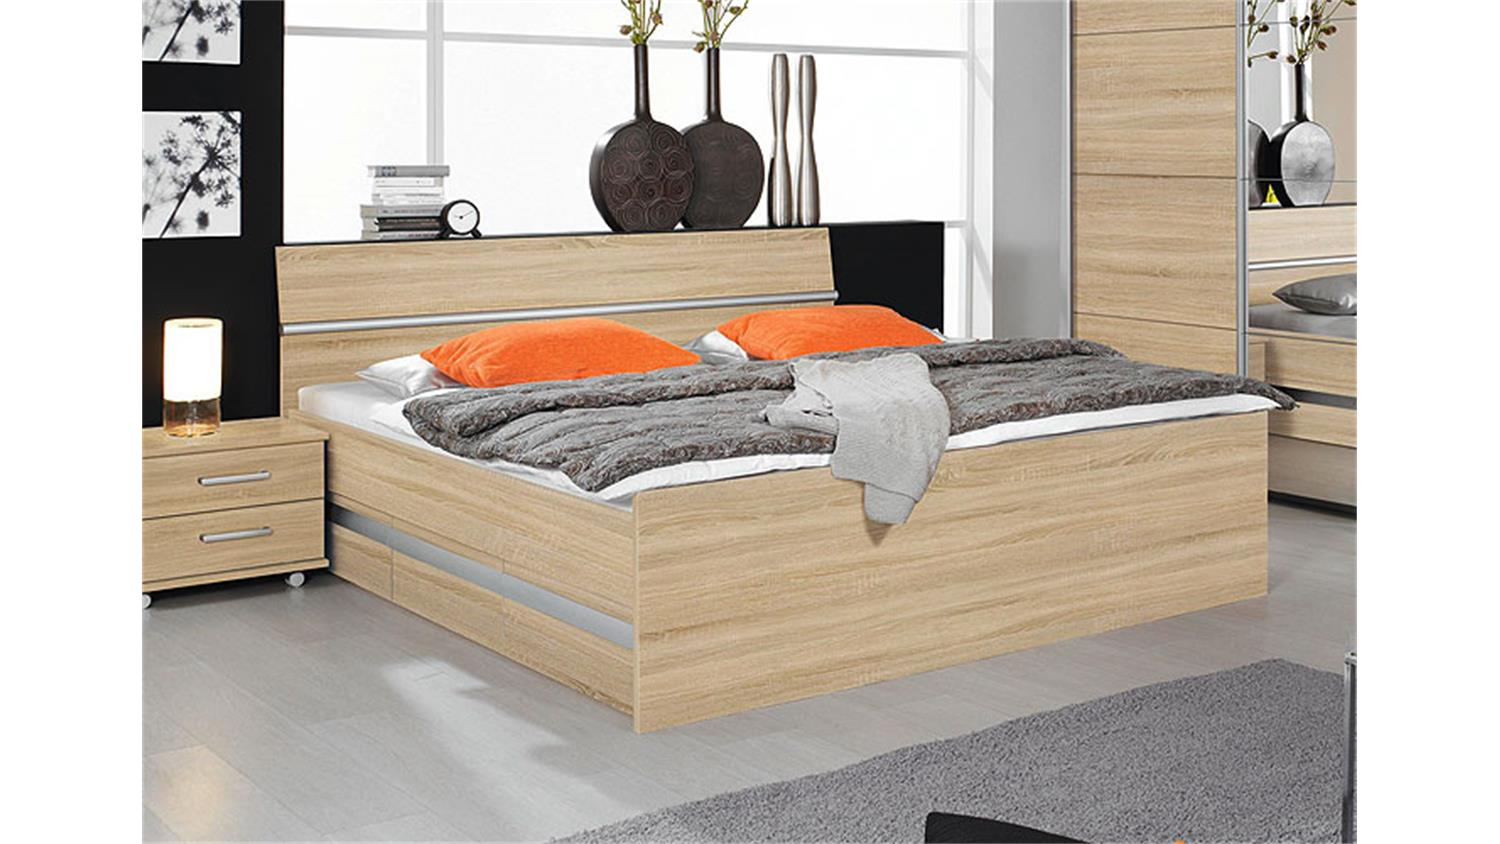 bett sonoma eiche bett arona sonoma eiche lava hochglanz bettkasten 180x200 bett einzelbett. Black Bedroom Furniture Sets. Home Design Ideas